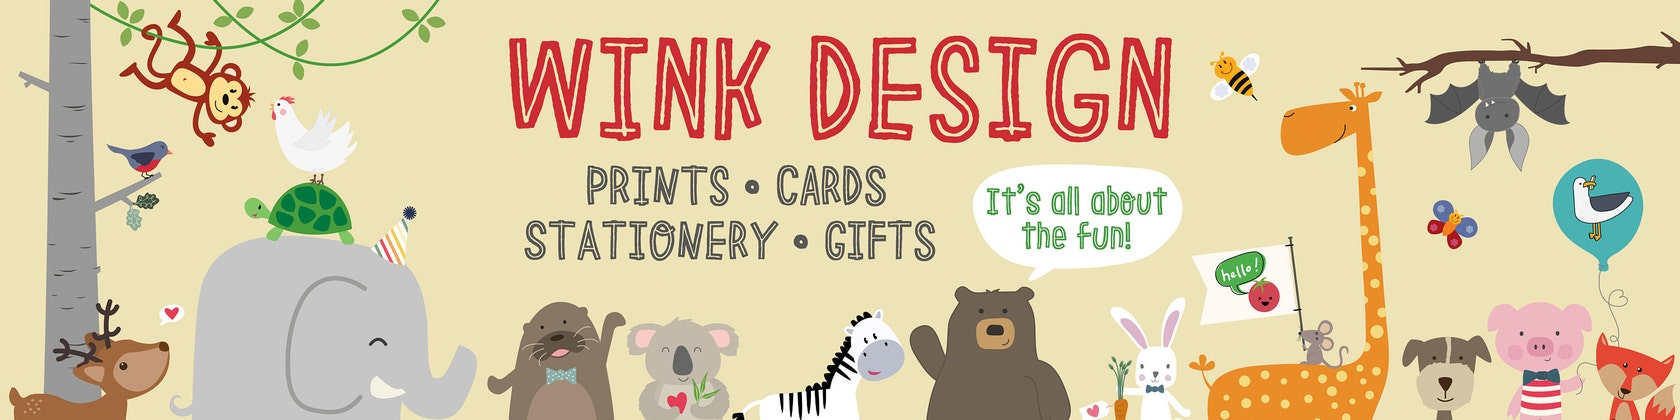 Wink Designs Small//Black//Zebra